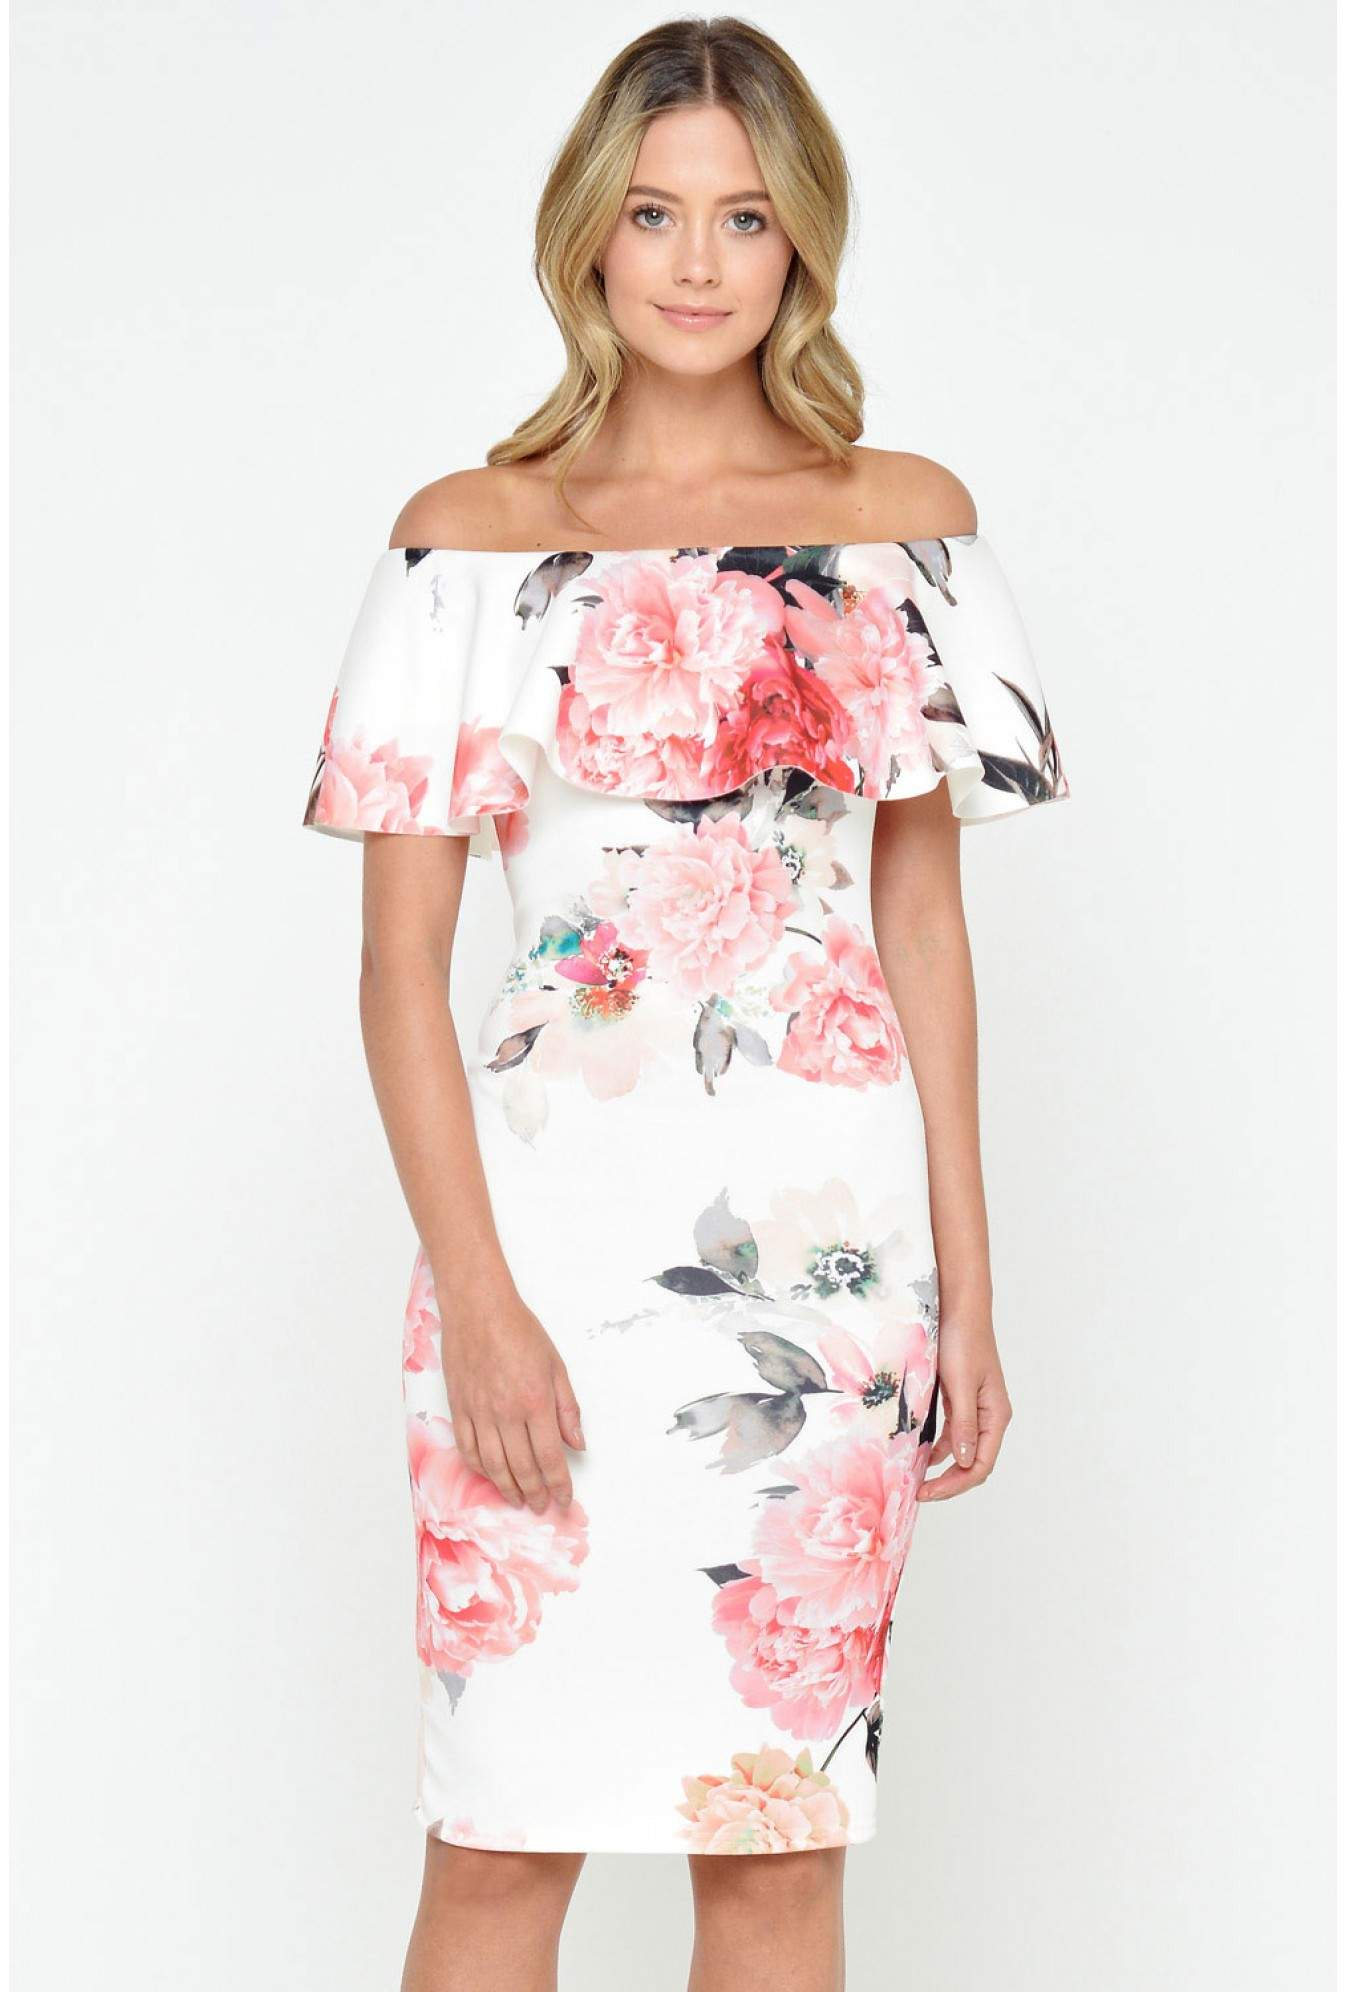 503c12b3340a Evita Lucy Off Shoulder Floral Dress in Cream | iCLOTHING